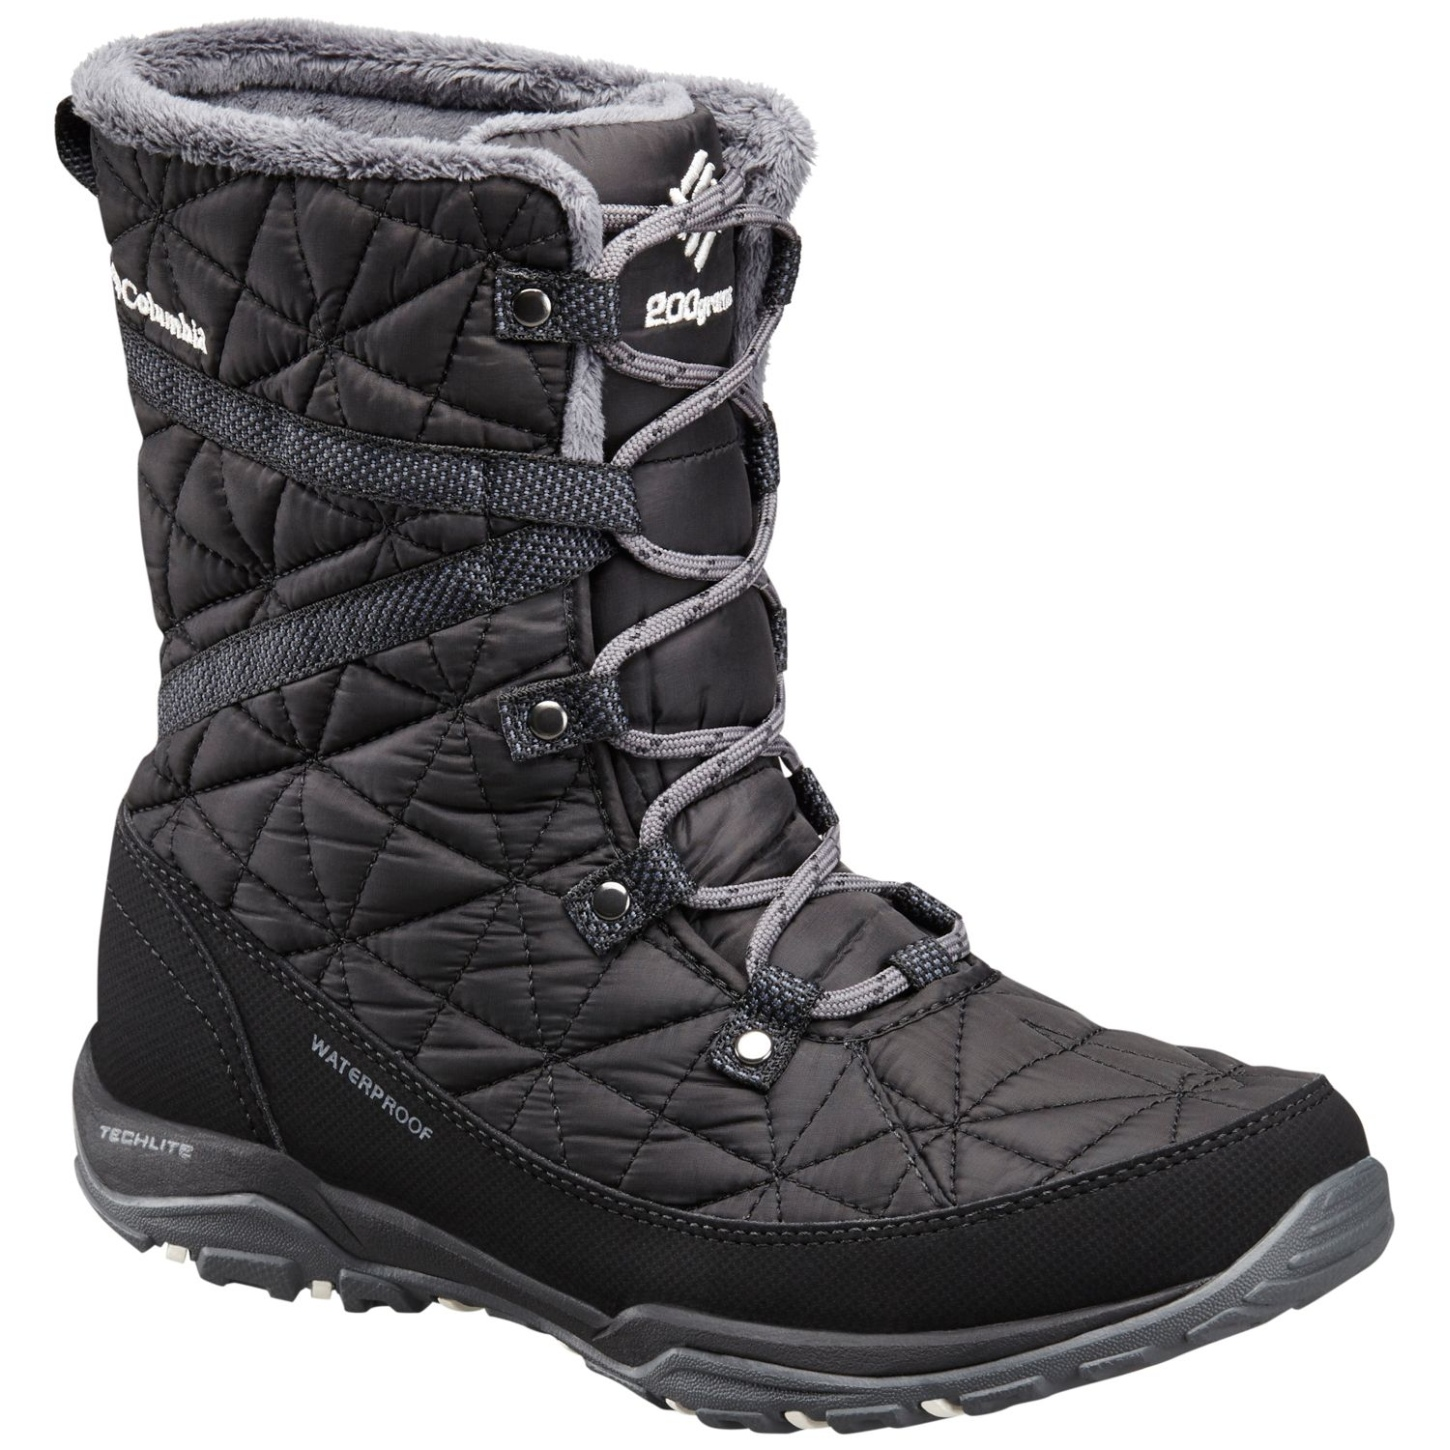 Columbia Women's Loveland Mid Omni-heat Waterproof Winter Boots Black, Sea Salt-30